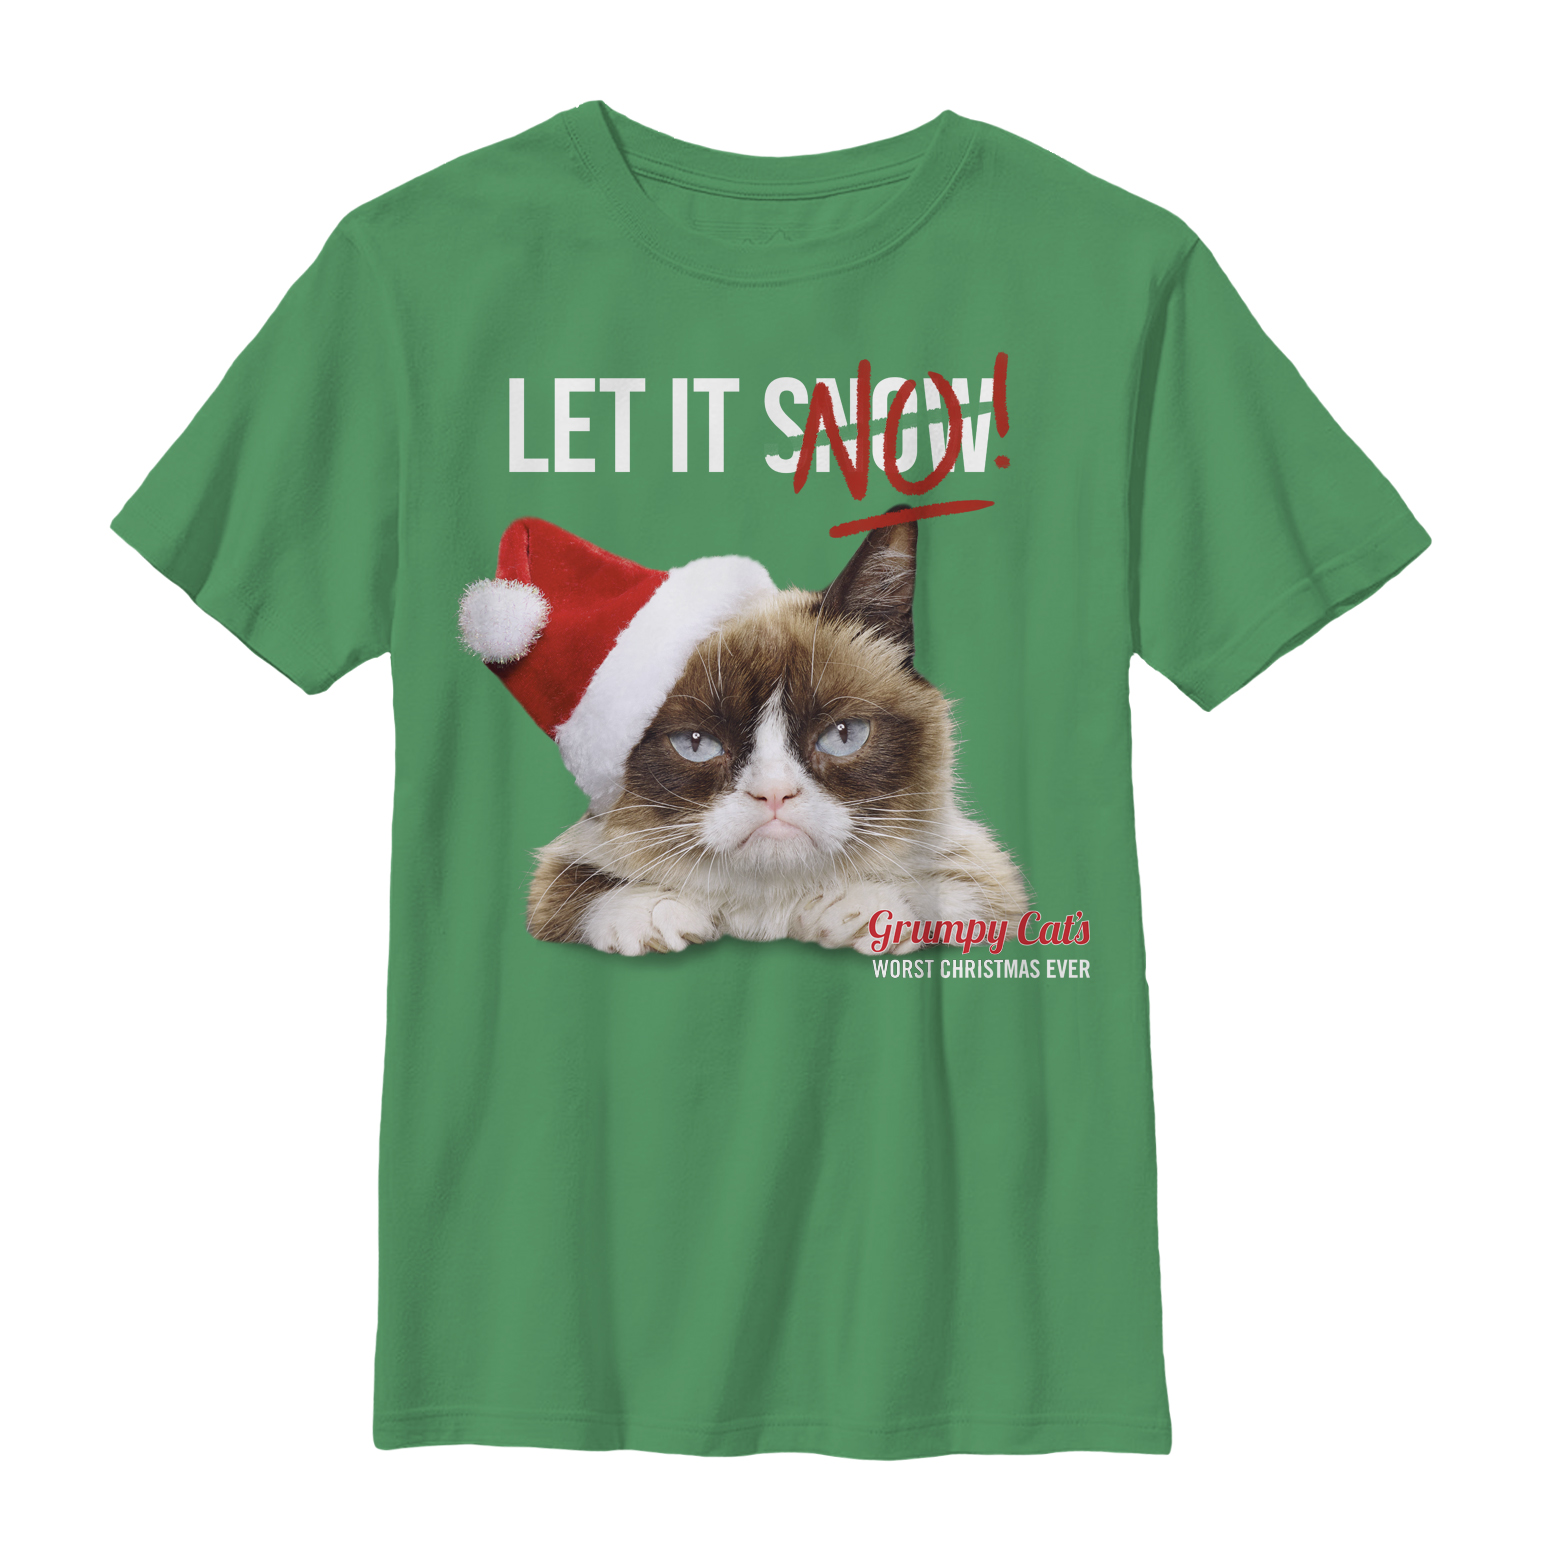 Grumpy Cat Boys' Let it No T-Shirt